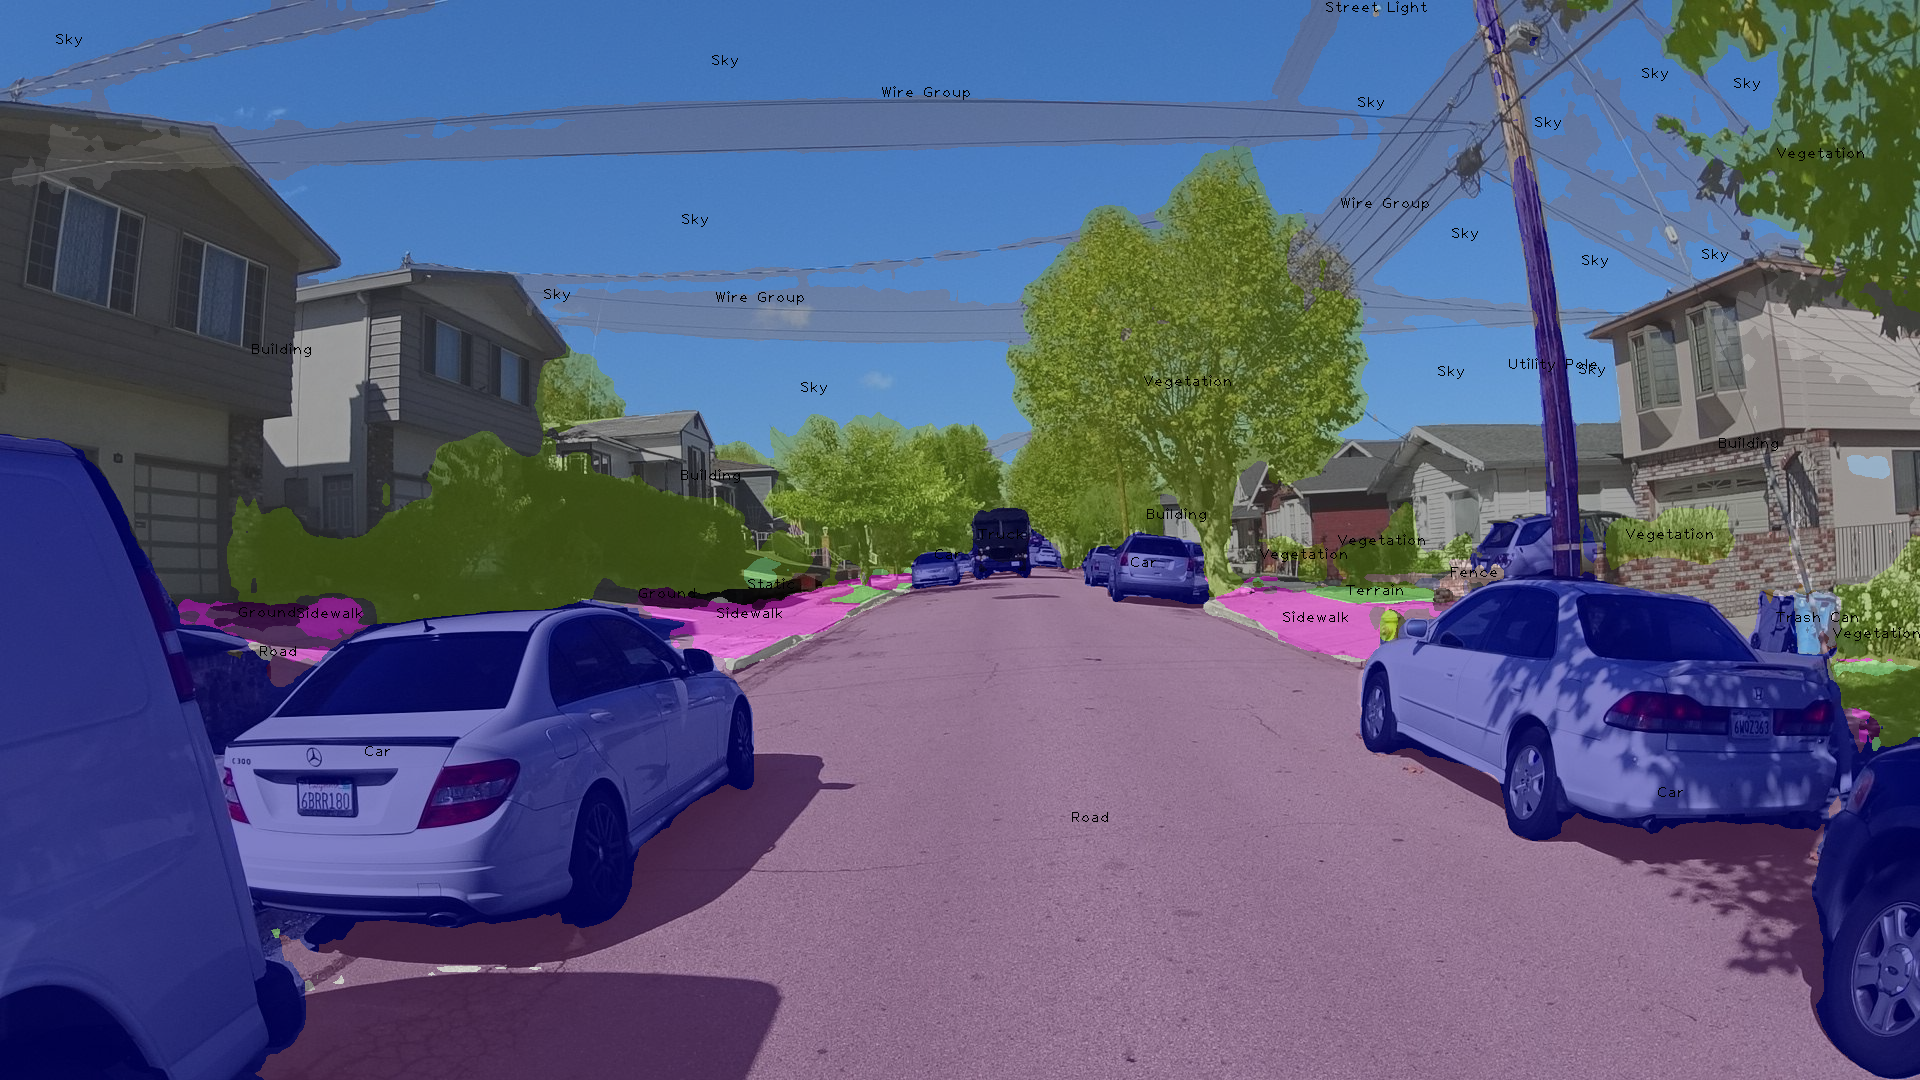 Object detections – Mapillary